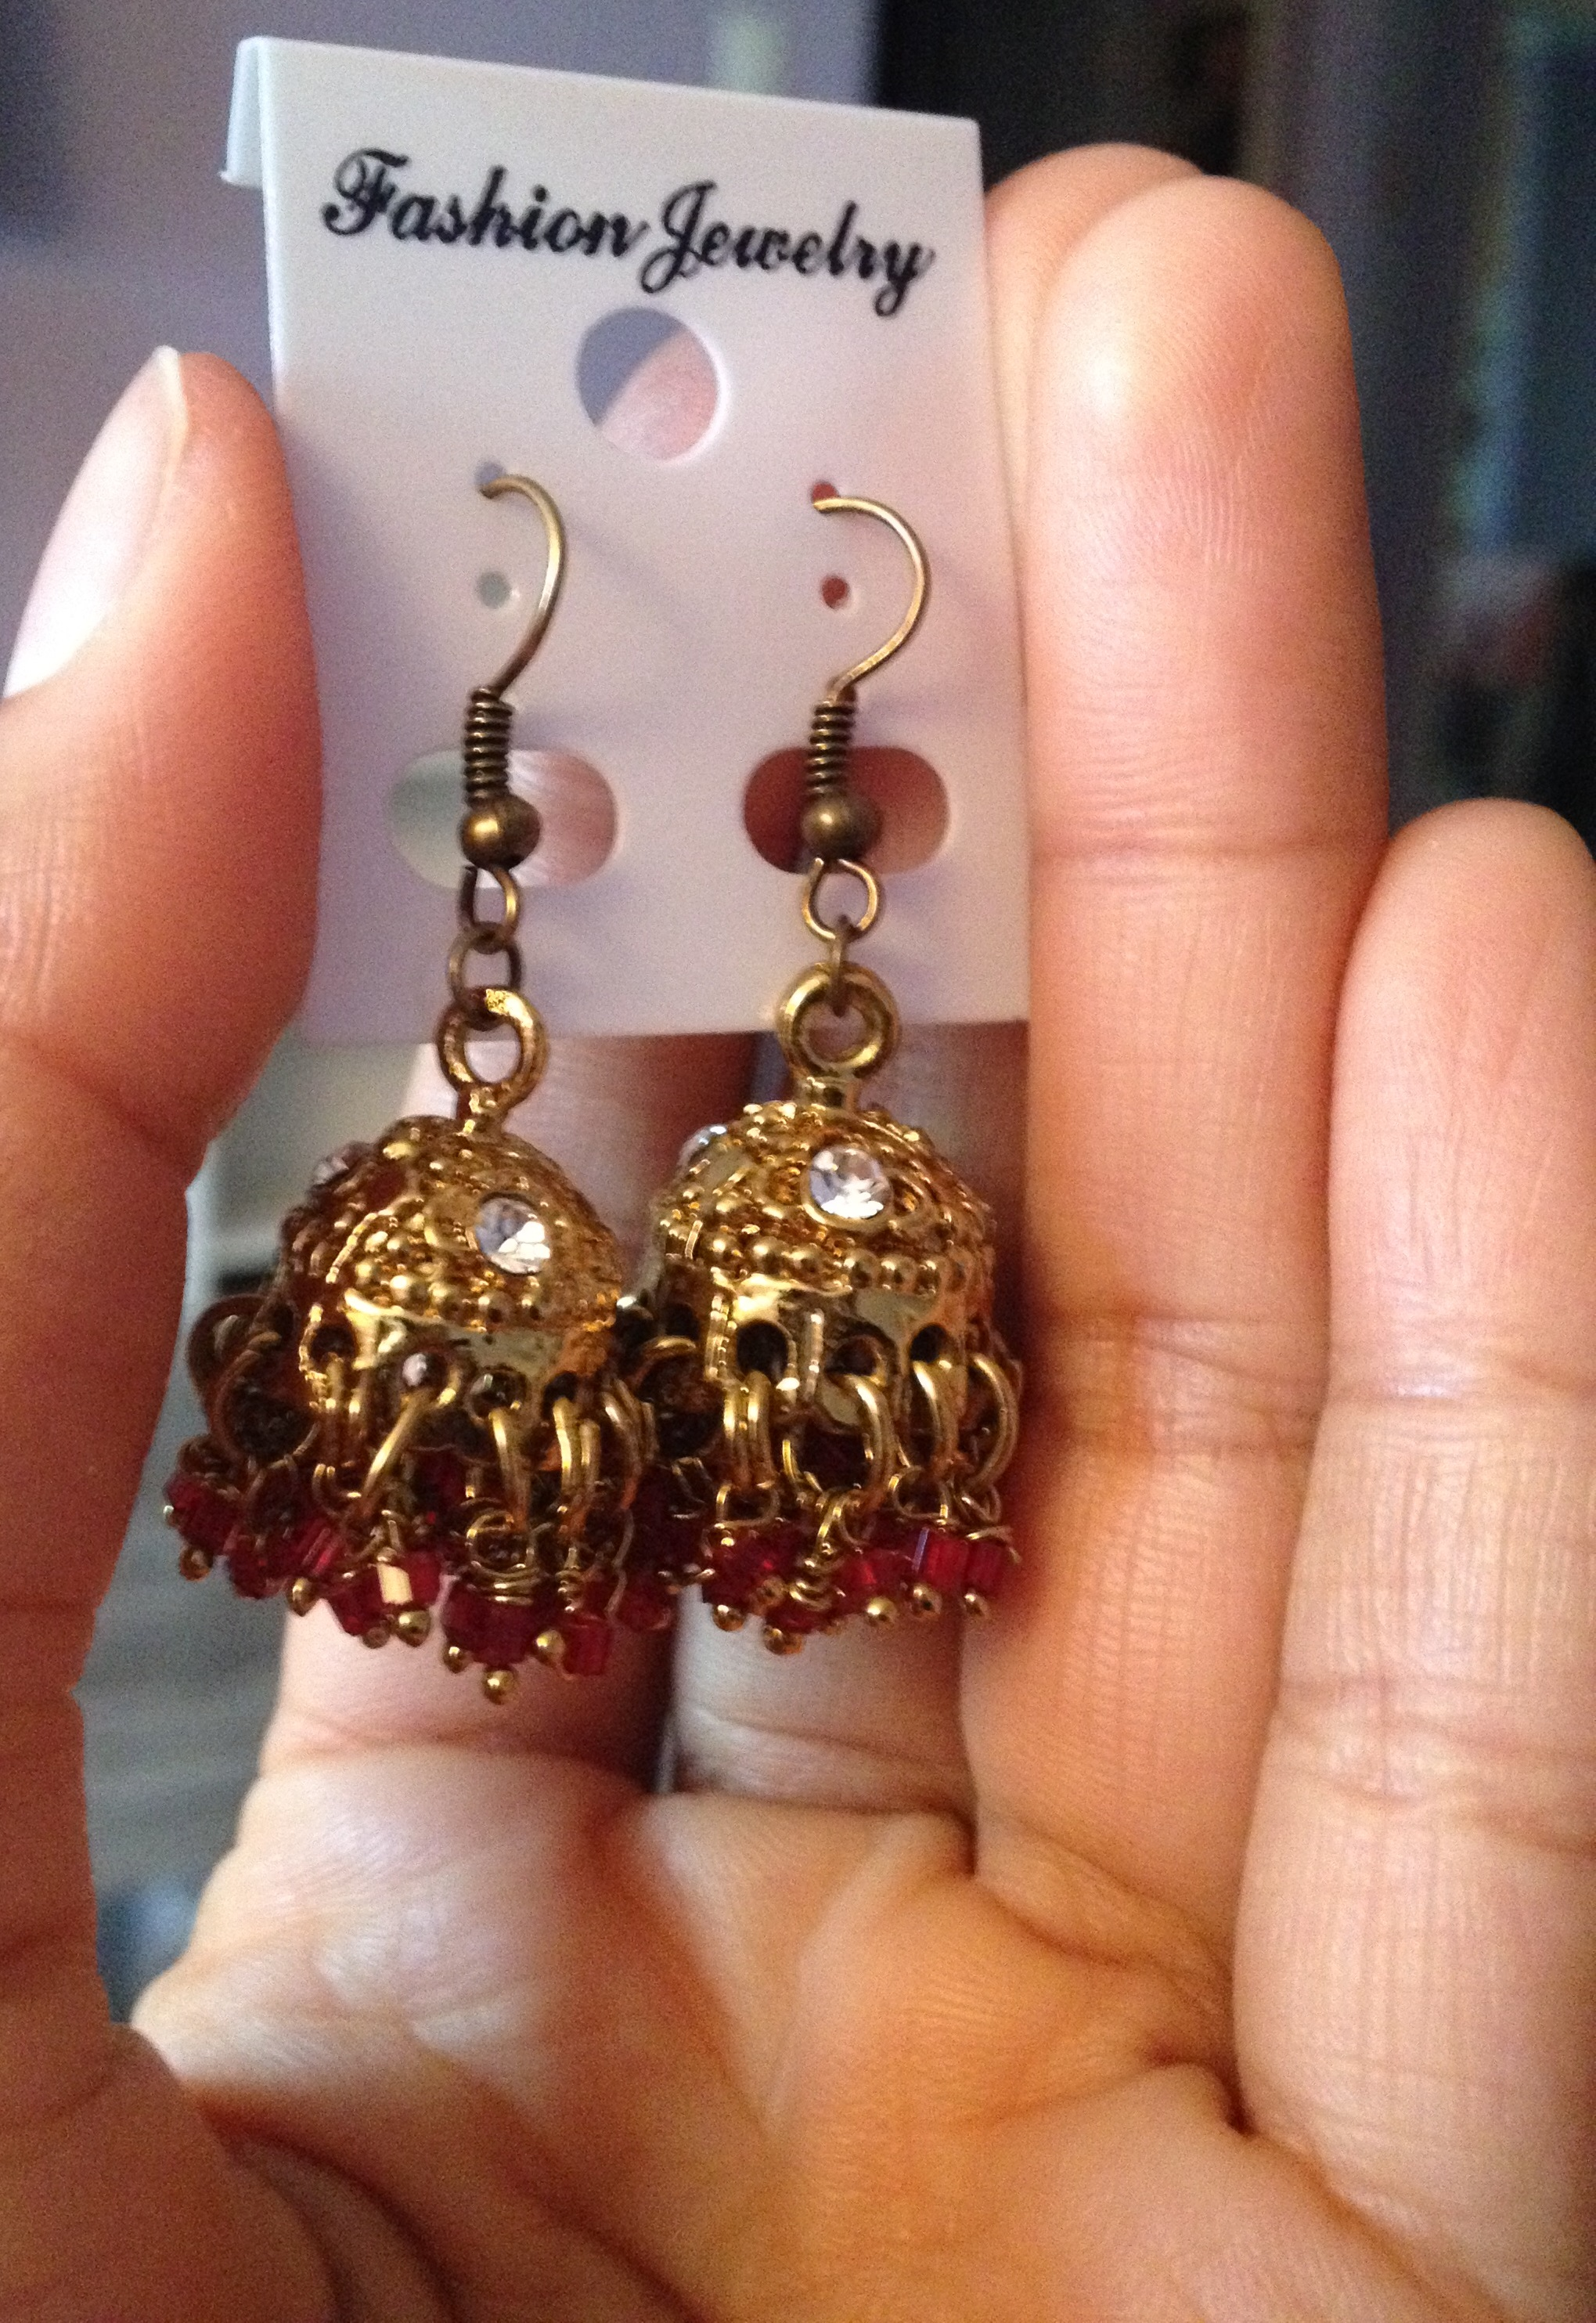 Handmade Up-cycled Earrings!